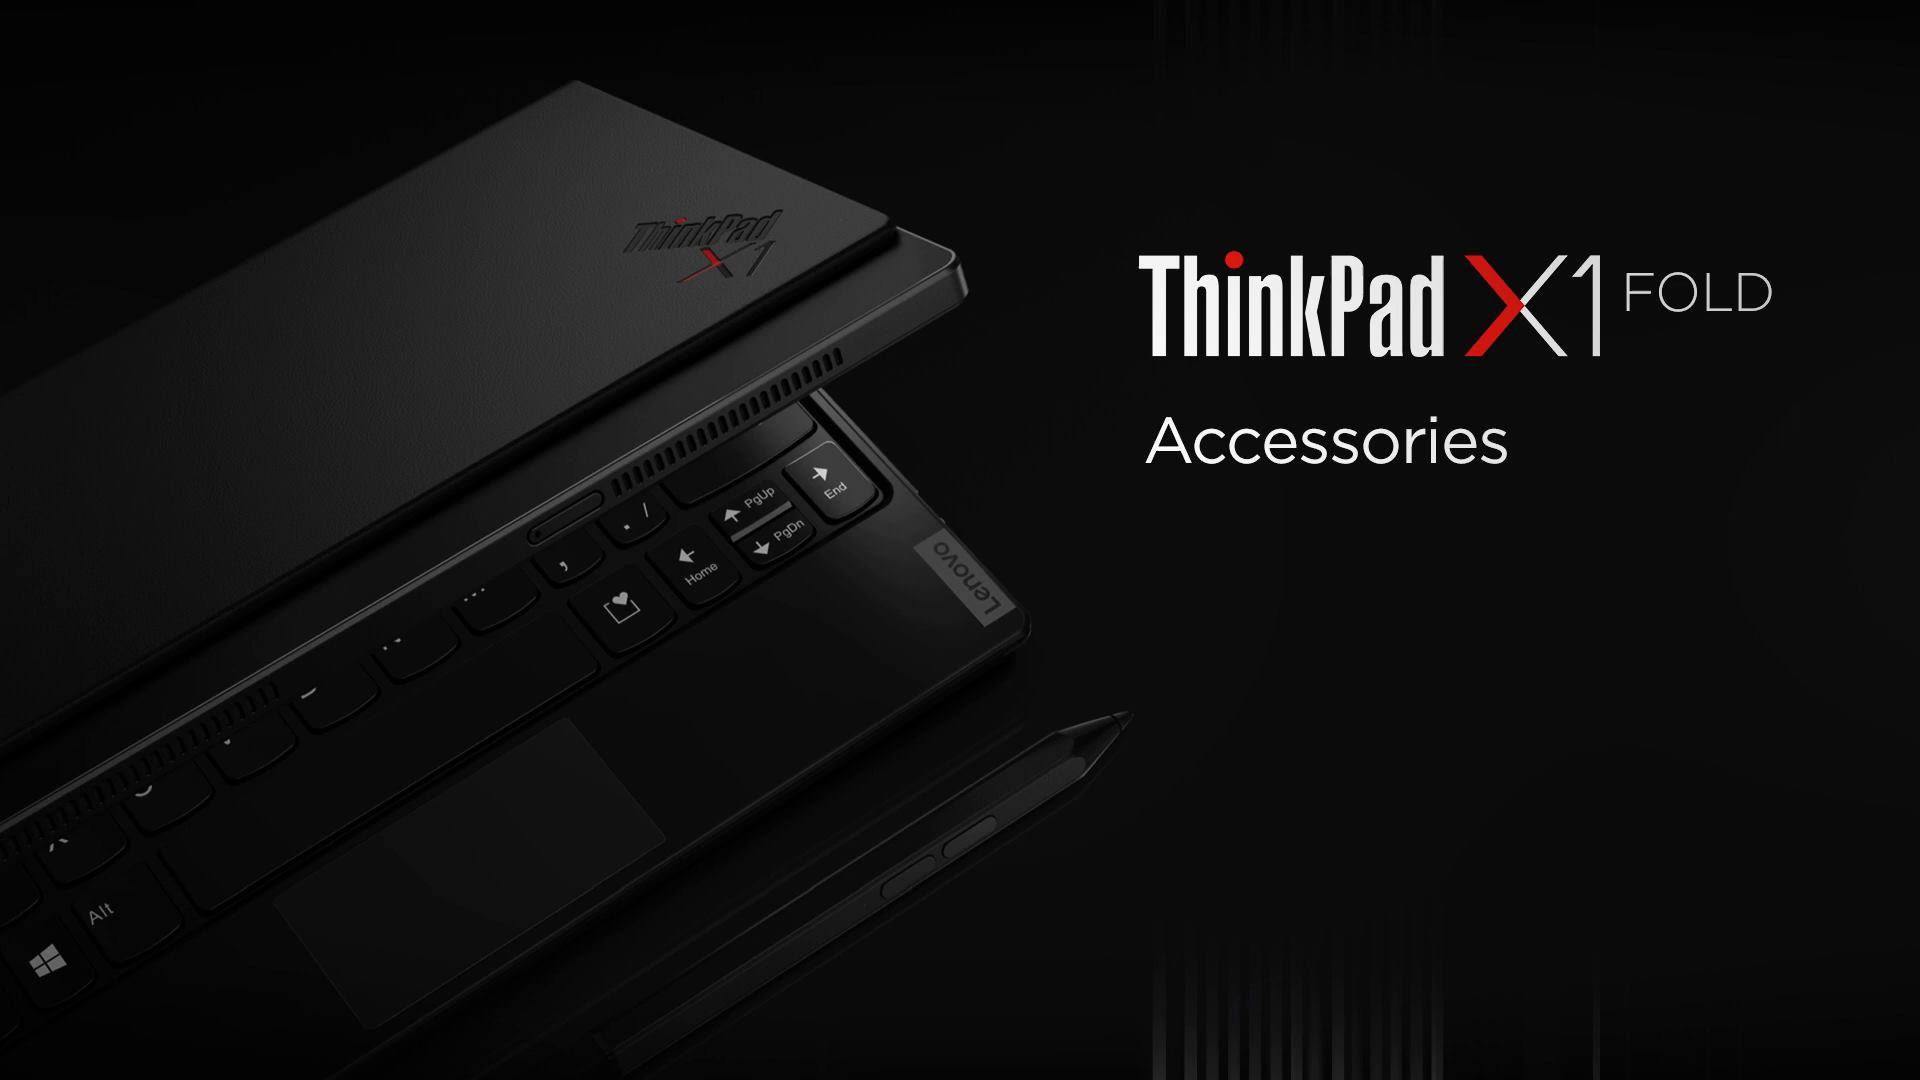 Innovation also comes with accessories too. Make the most out of the Lenovo ThinkPad X1 Fold with optional accessories to help you make the most of your reality-bending device. Shop now at: www.tomtop.com